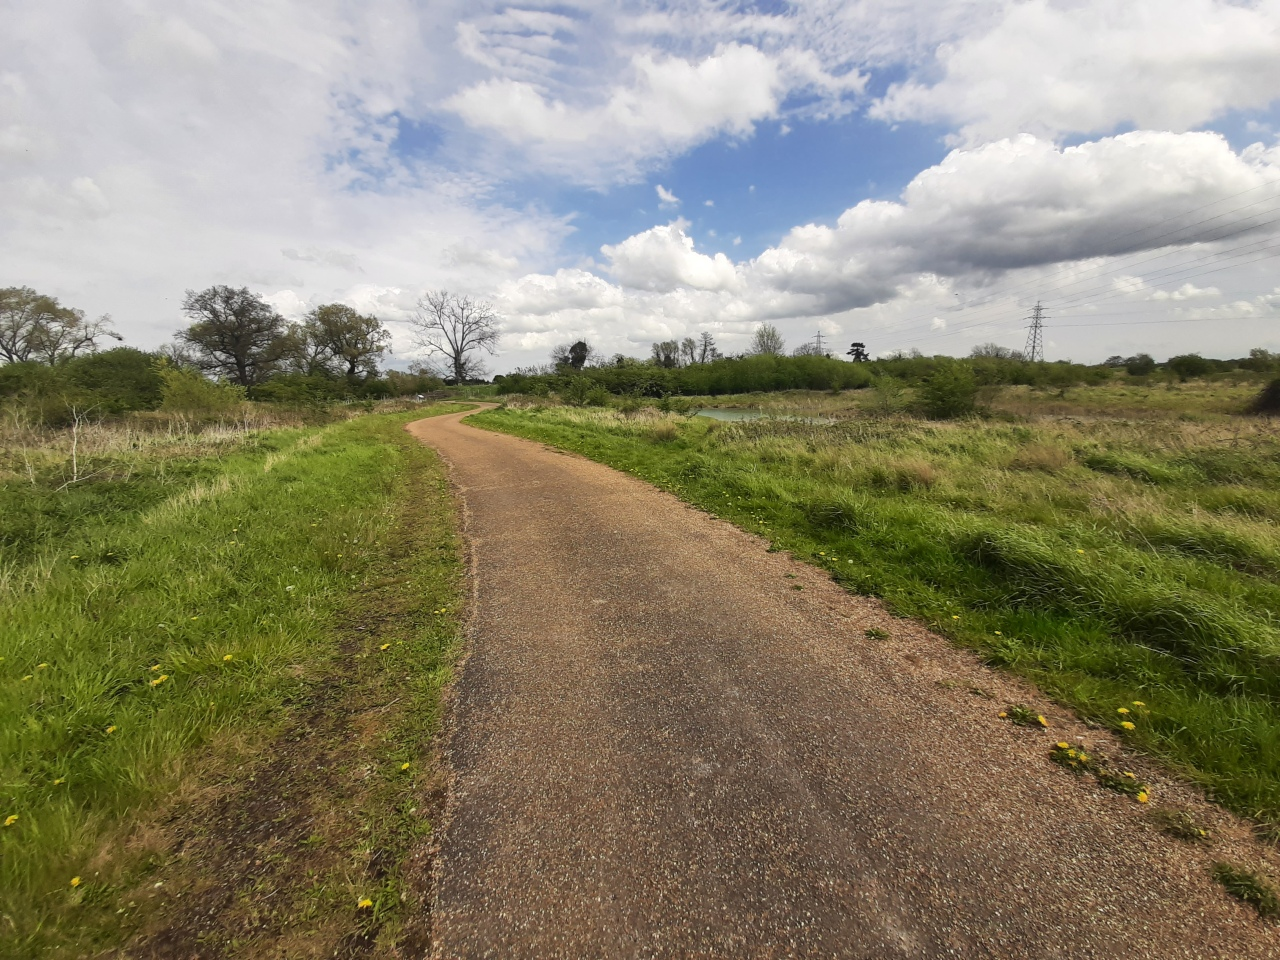 Cycling to Ely via National CyclingRoutes